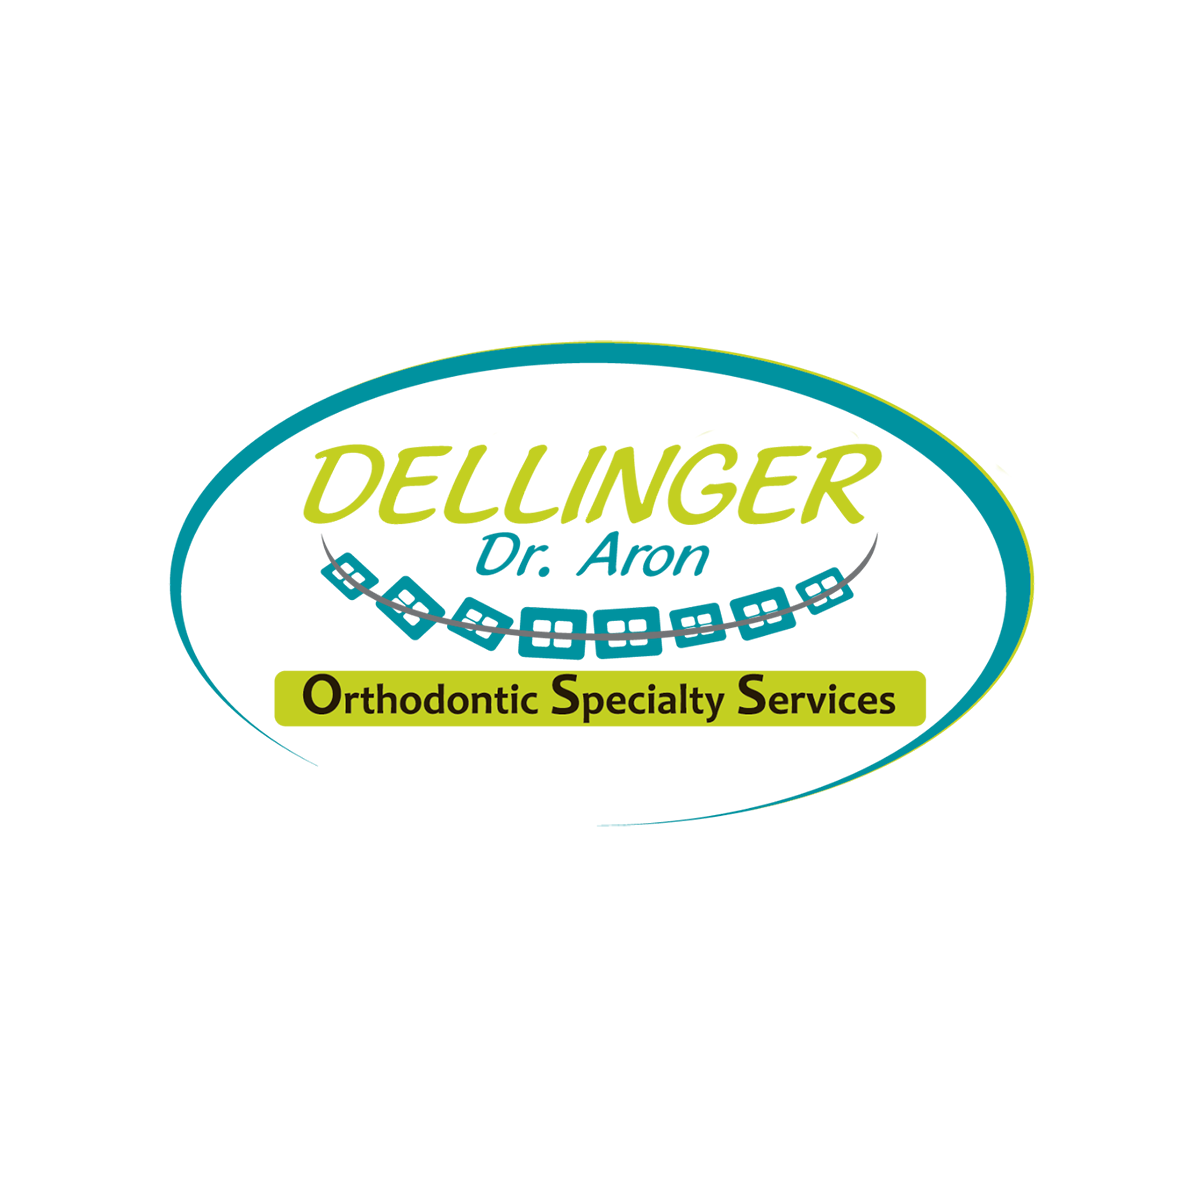 Orthodontic Specialty Services - Dr. Aron Dellinger DDS